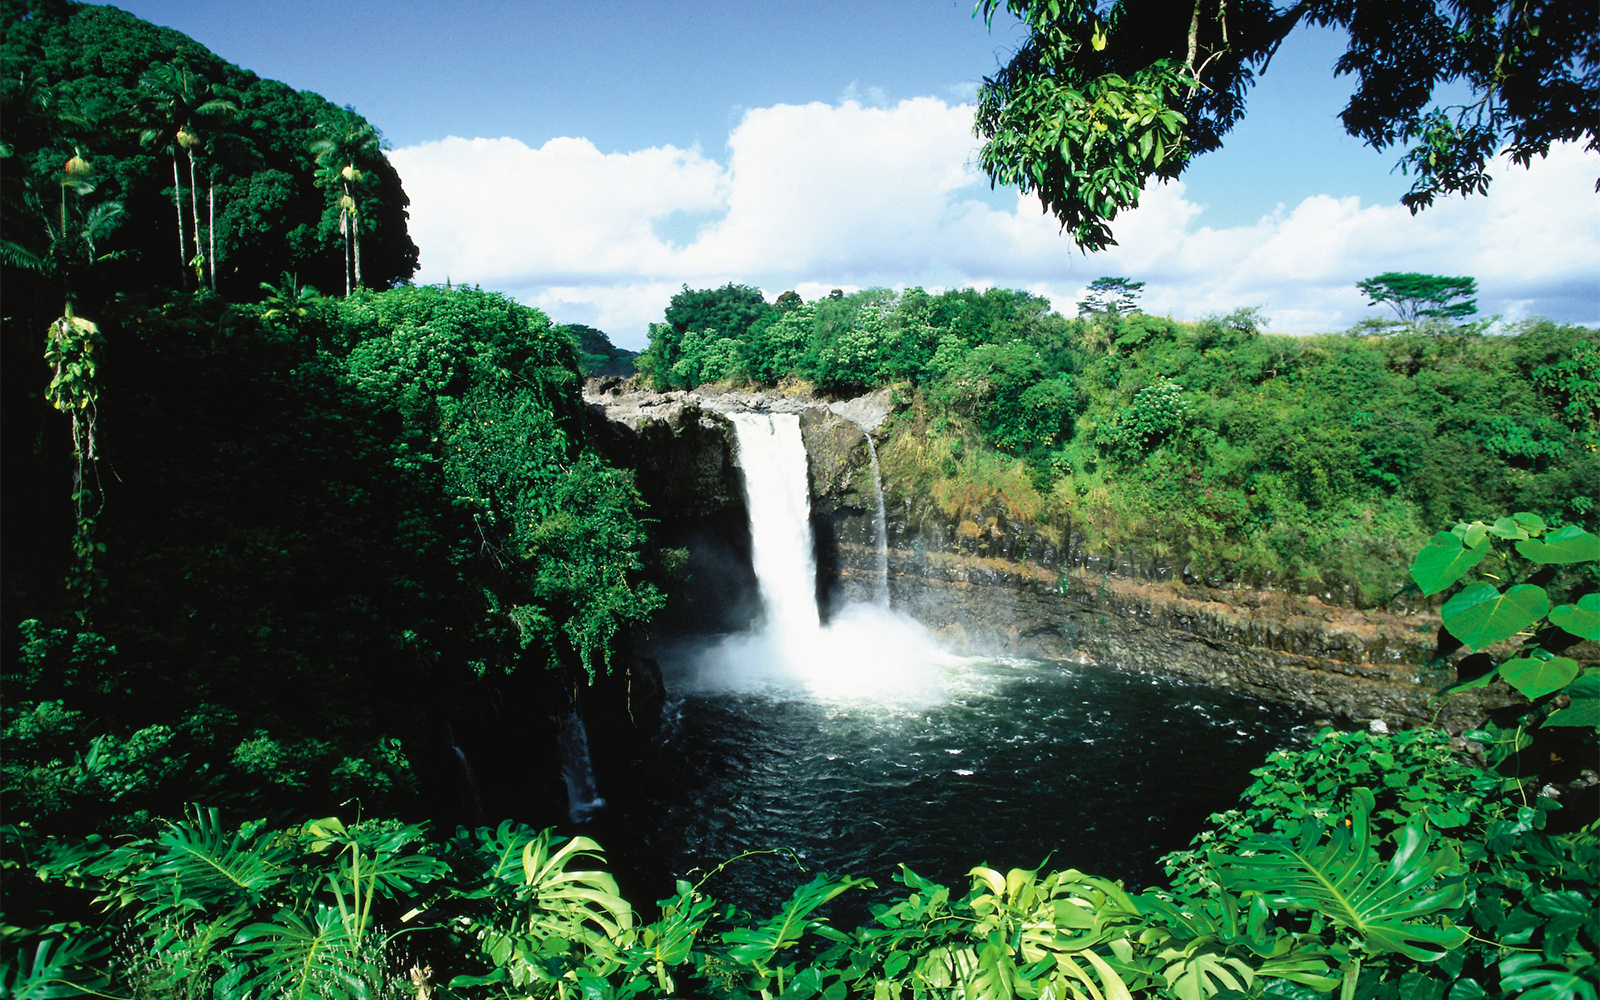 13. Big Island, Hawaii